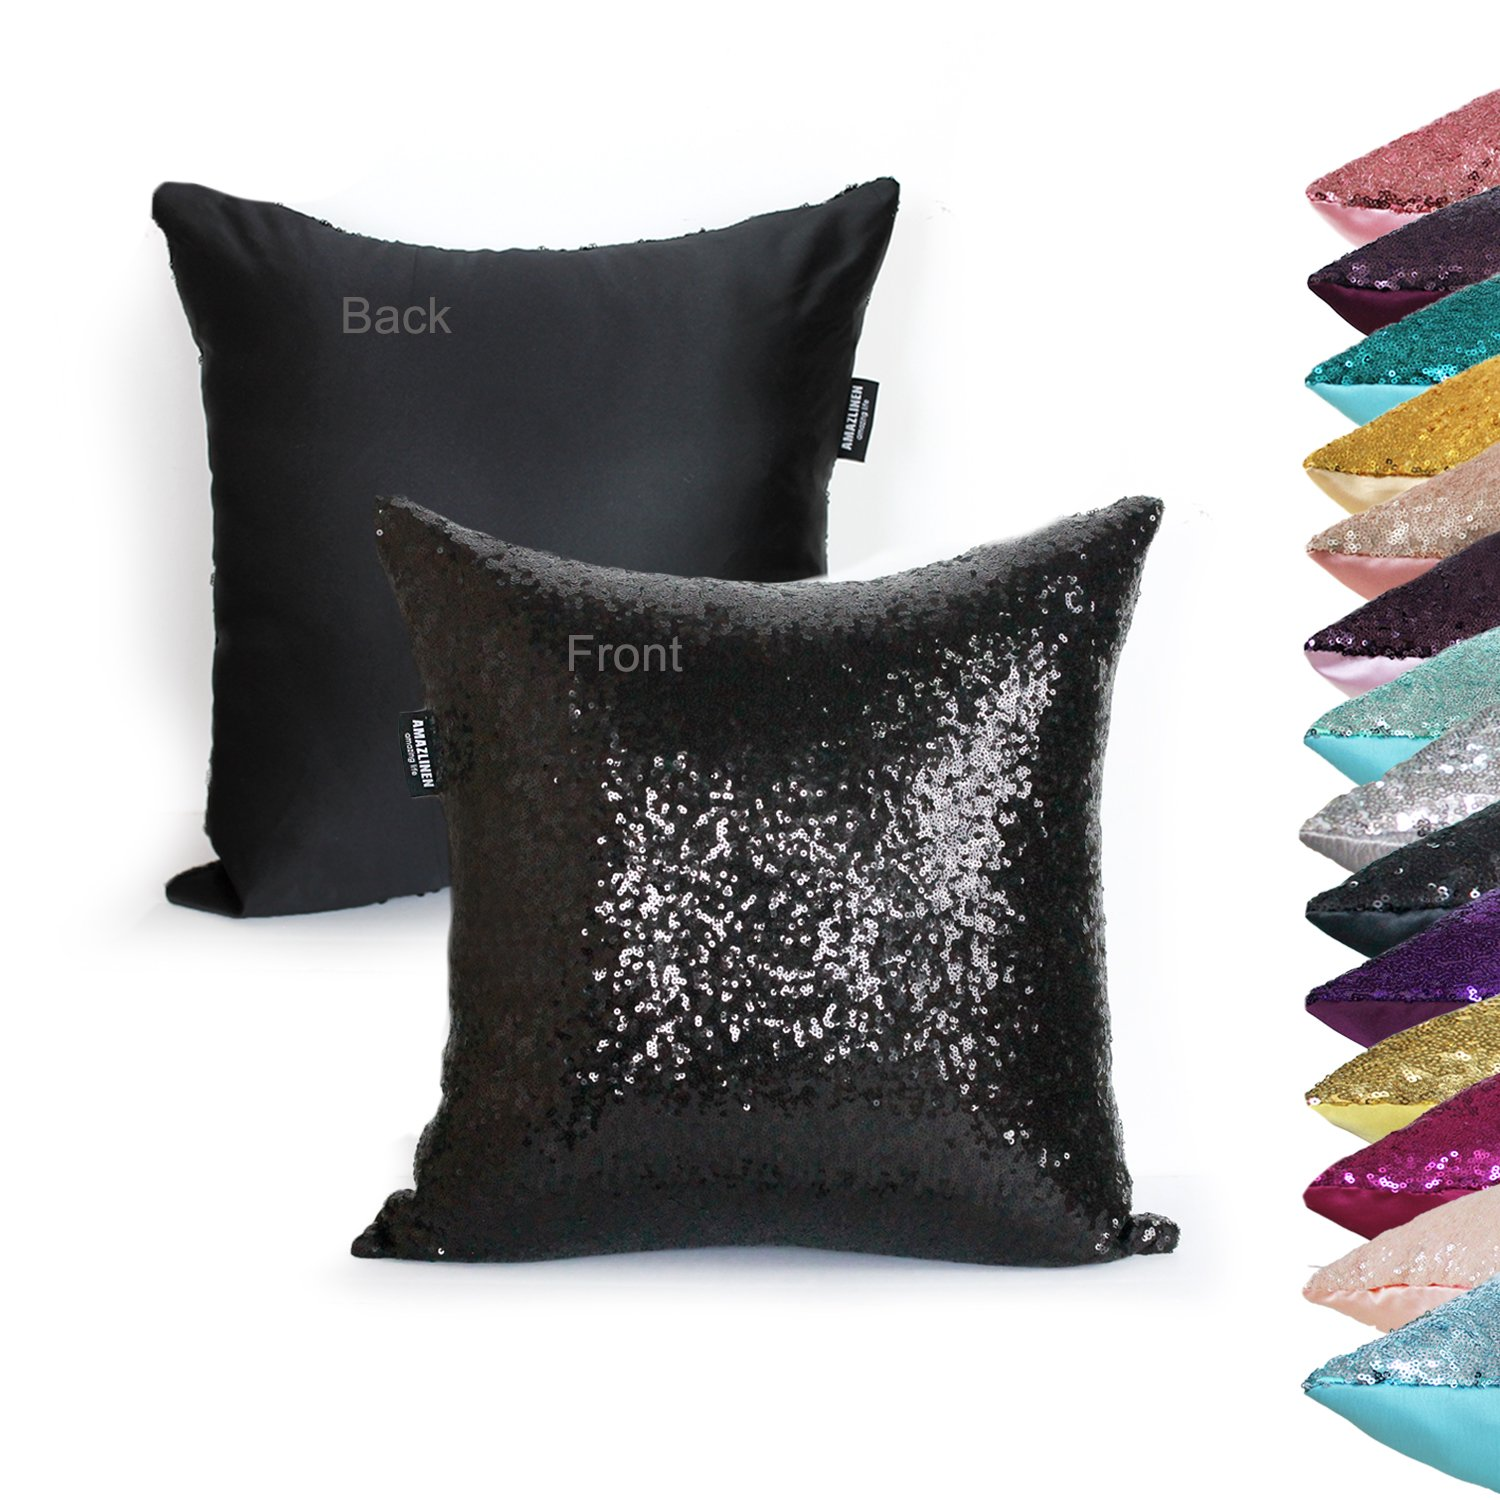 Decorative Pillow Cover Model : AMAZLINEN(TM) Decorative Glitzy Sequin & Comfy Satin Solid Throw Pillow Cover... Chickadee ...